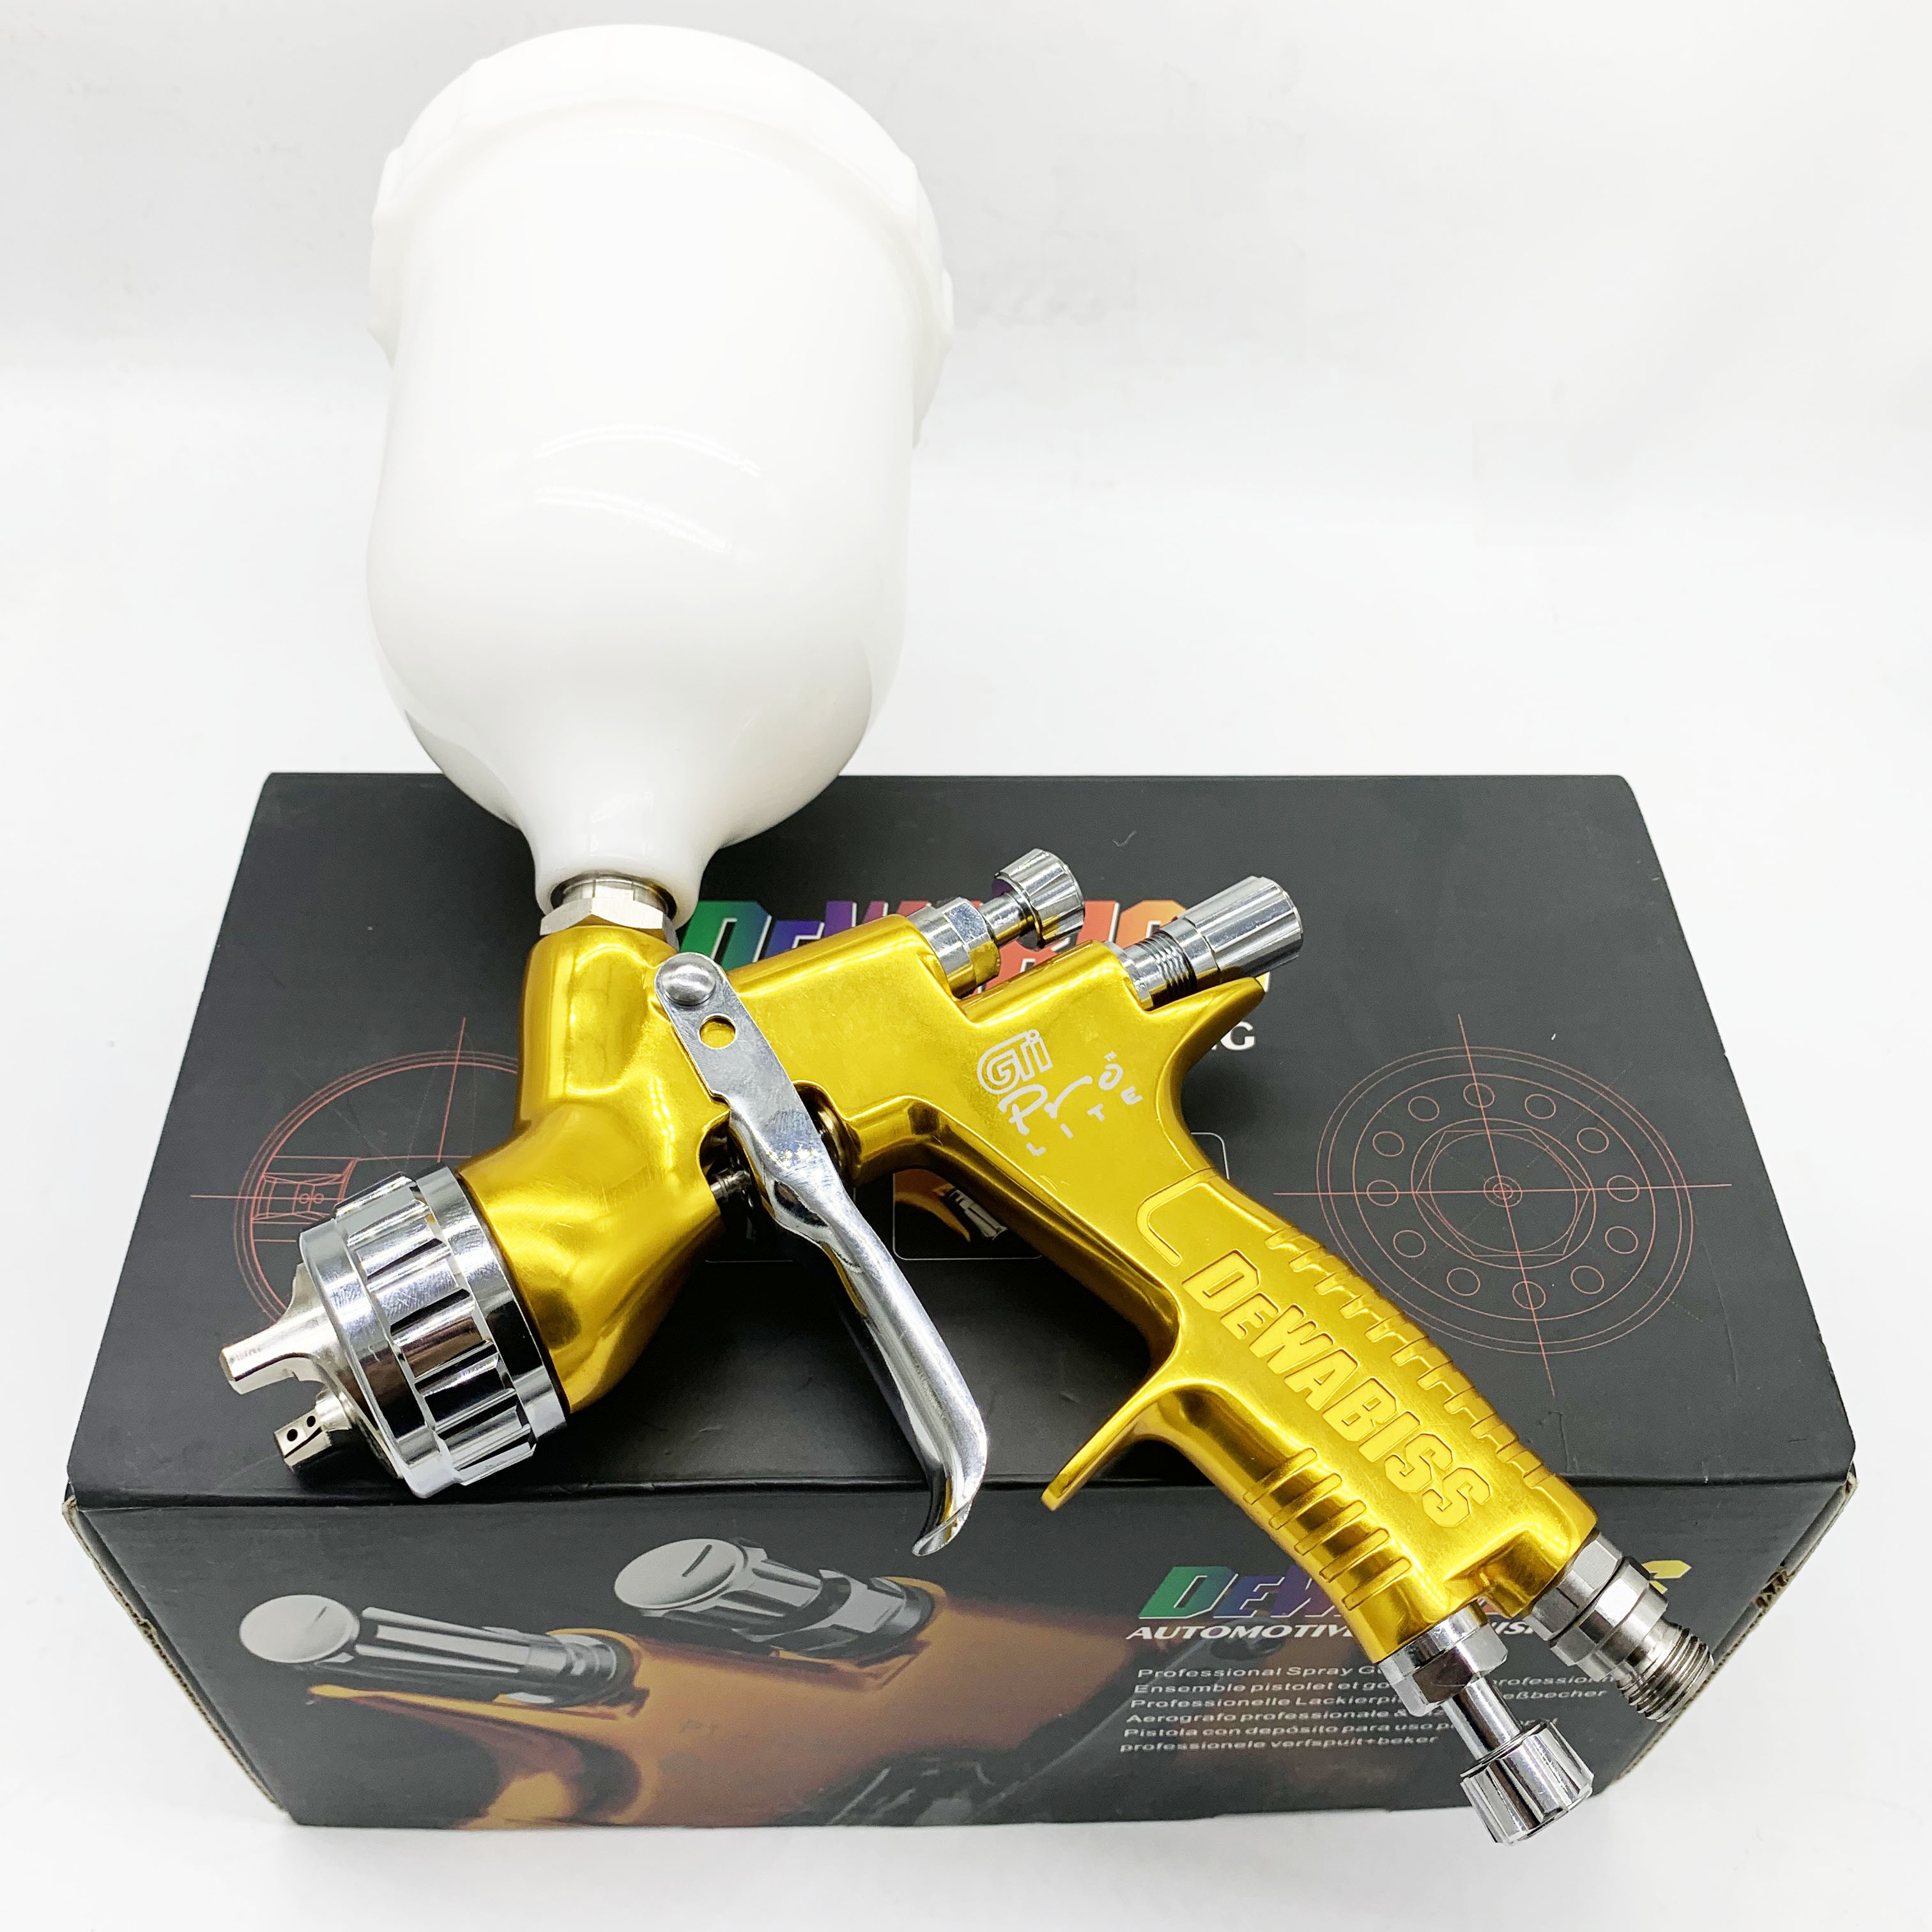 Dewabiss GTI Spray Paint Gun TE20 Pro Lite Airbrush Car Airless Painting 1.3mm Nozzle Sprayer For Water Base Free Fitting